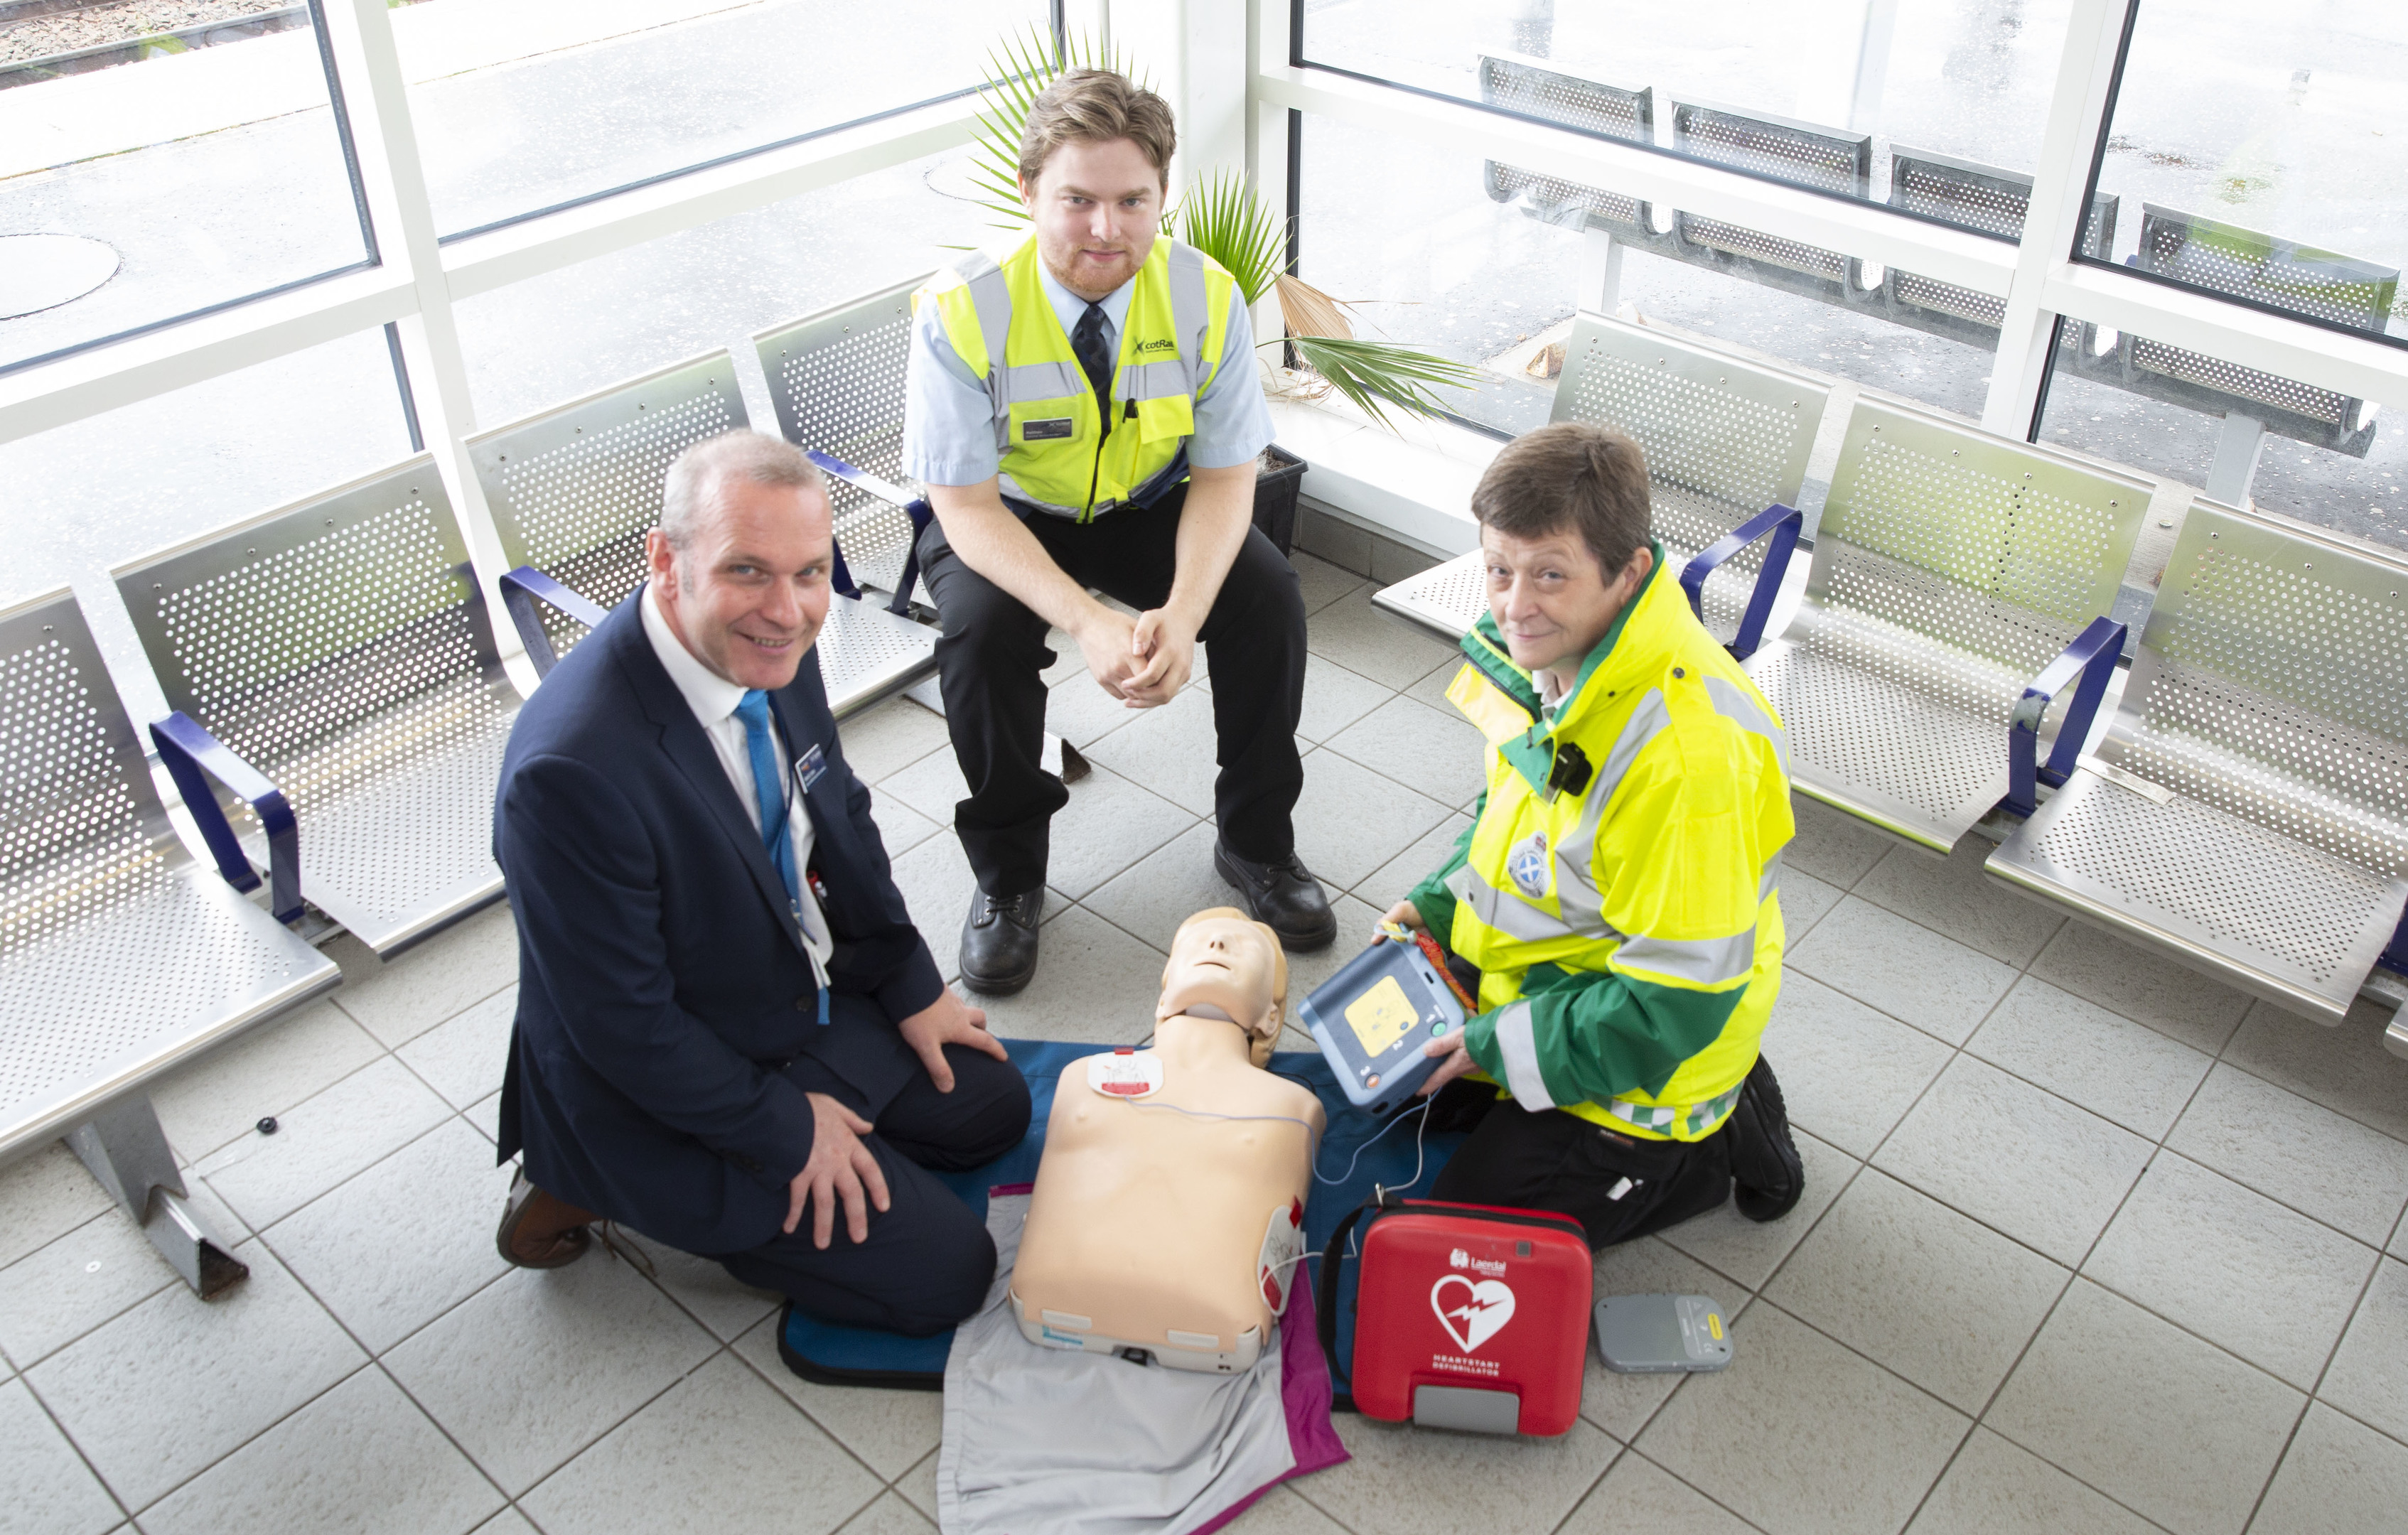 Karen Burns (right) demonstrates how to use a defibrillator to David Lister and Matthew Marshall.